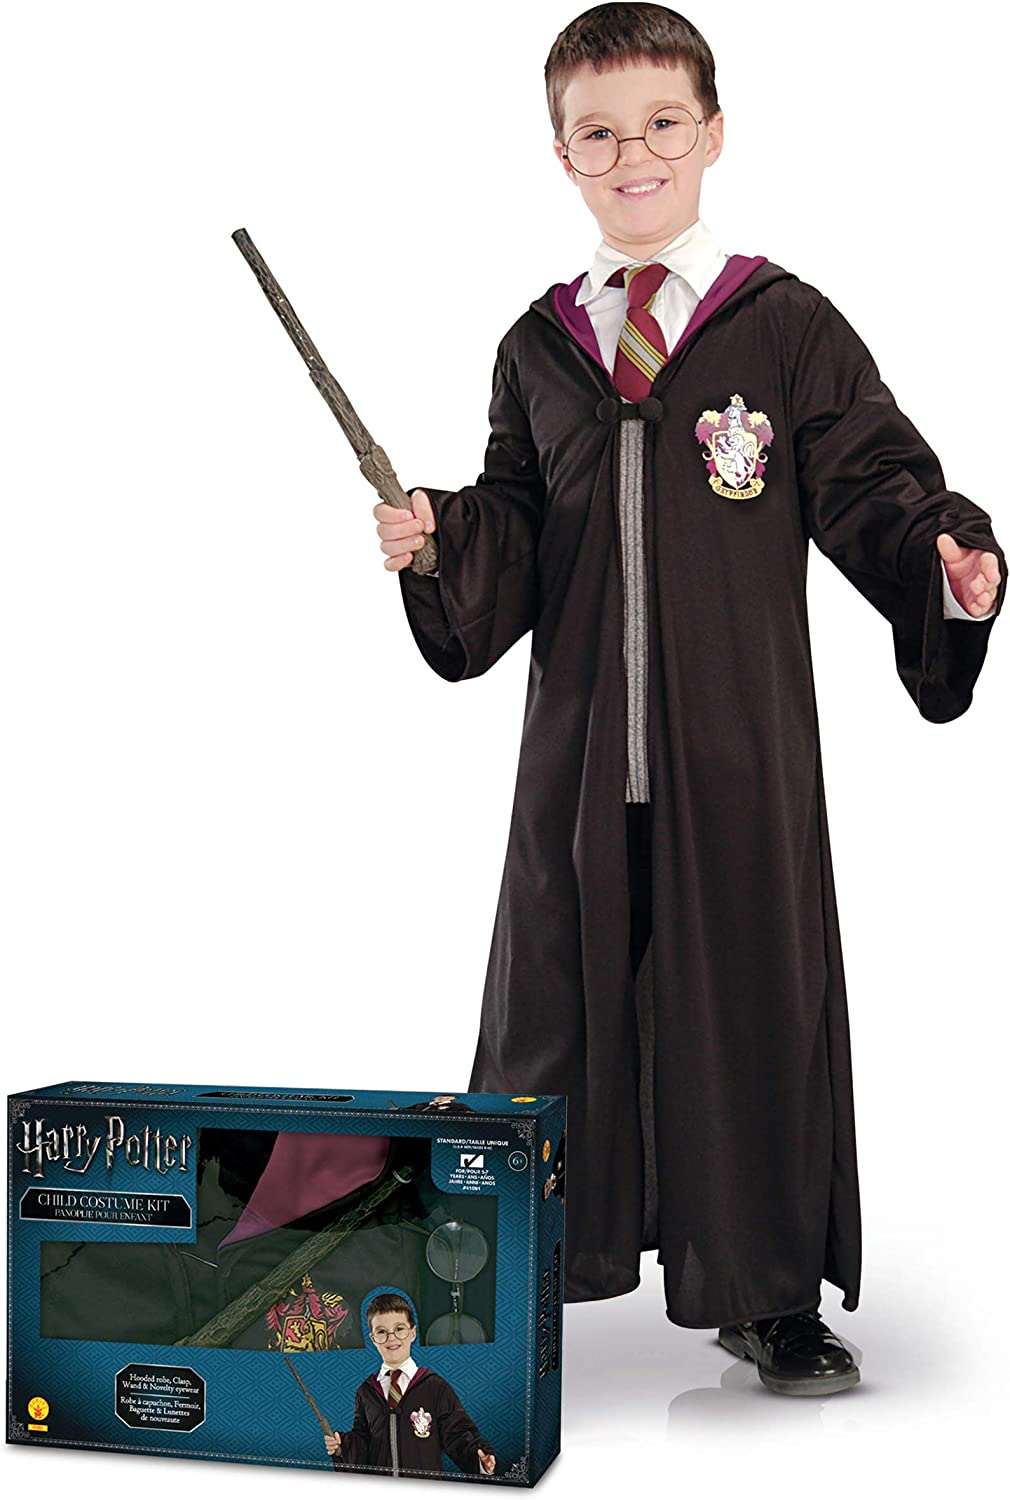 Generique - Caja Disfraz Harry Potter niño Talla única: Amazon.es ...